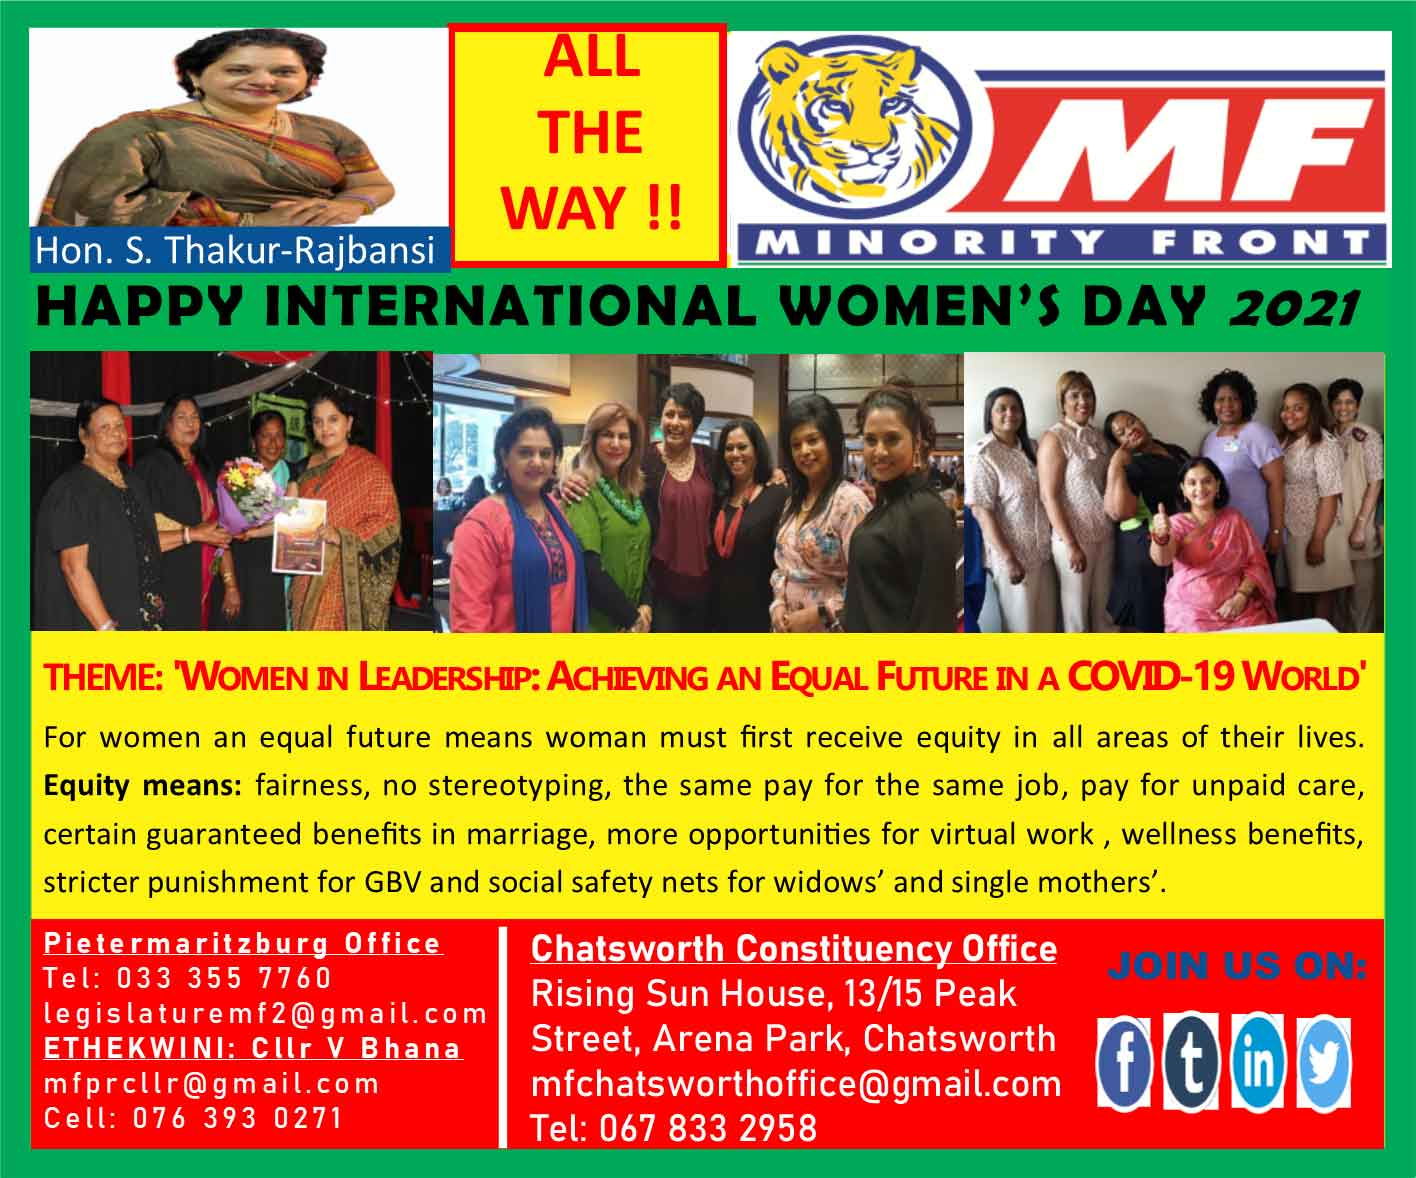 The Minority Front Wishes All Ladies a Happy International Women's Day 2021